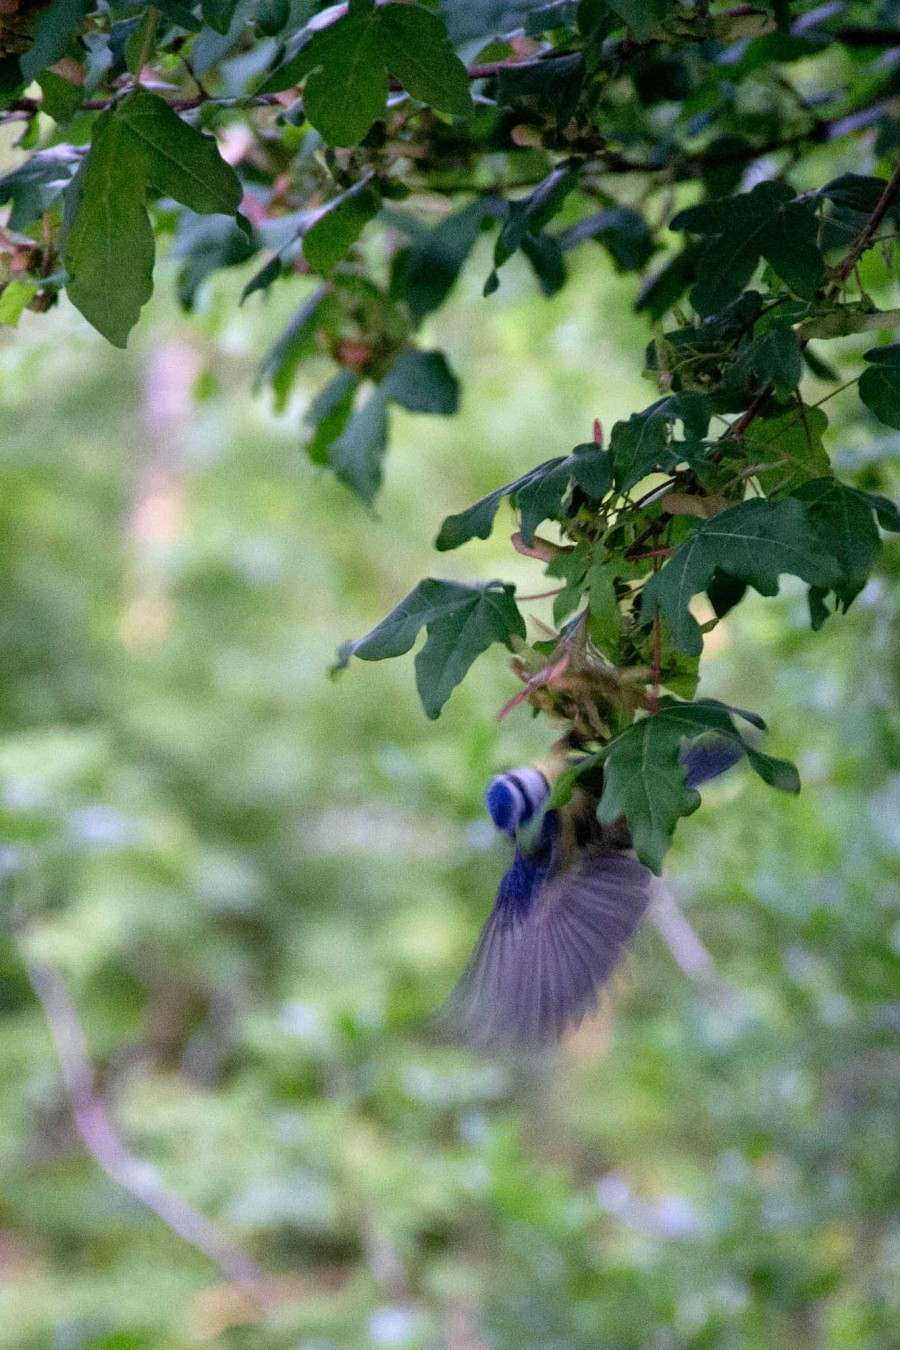 A Blue Tit (Cyanistes caeruleus) gleans prey from the leaves.